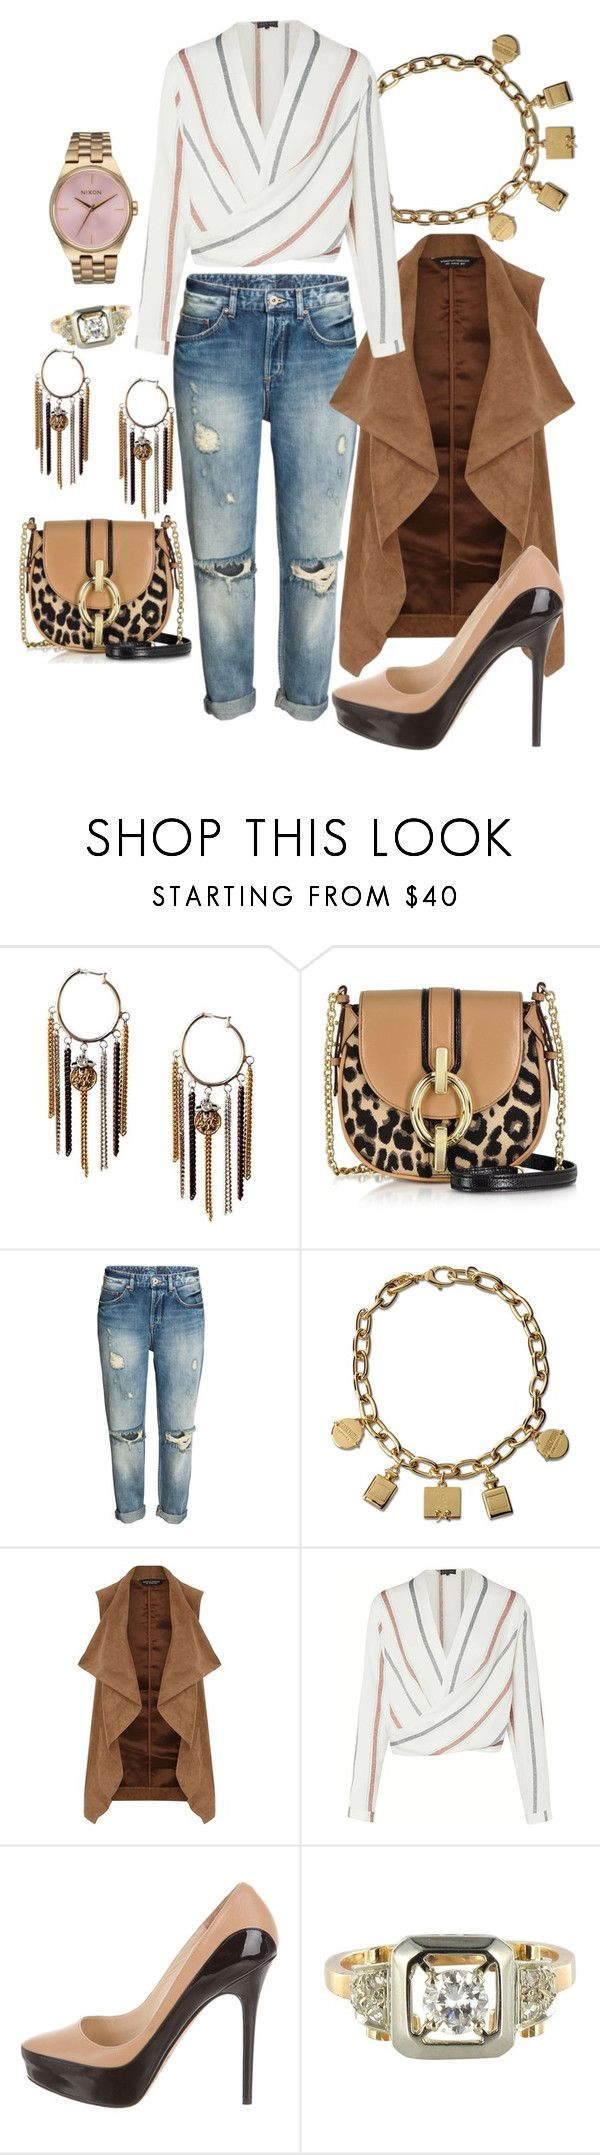 """""""Net Worth"""" by chelsofly ❤ liked on Polyvore featuring Diane Von Furstenberg, Moschino, Dorothy Perkins, Jimmy Choo and Nixon"""